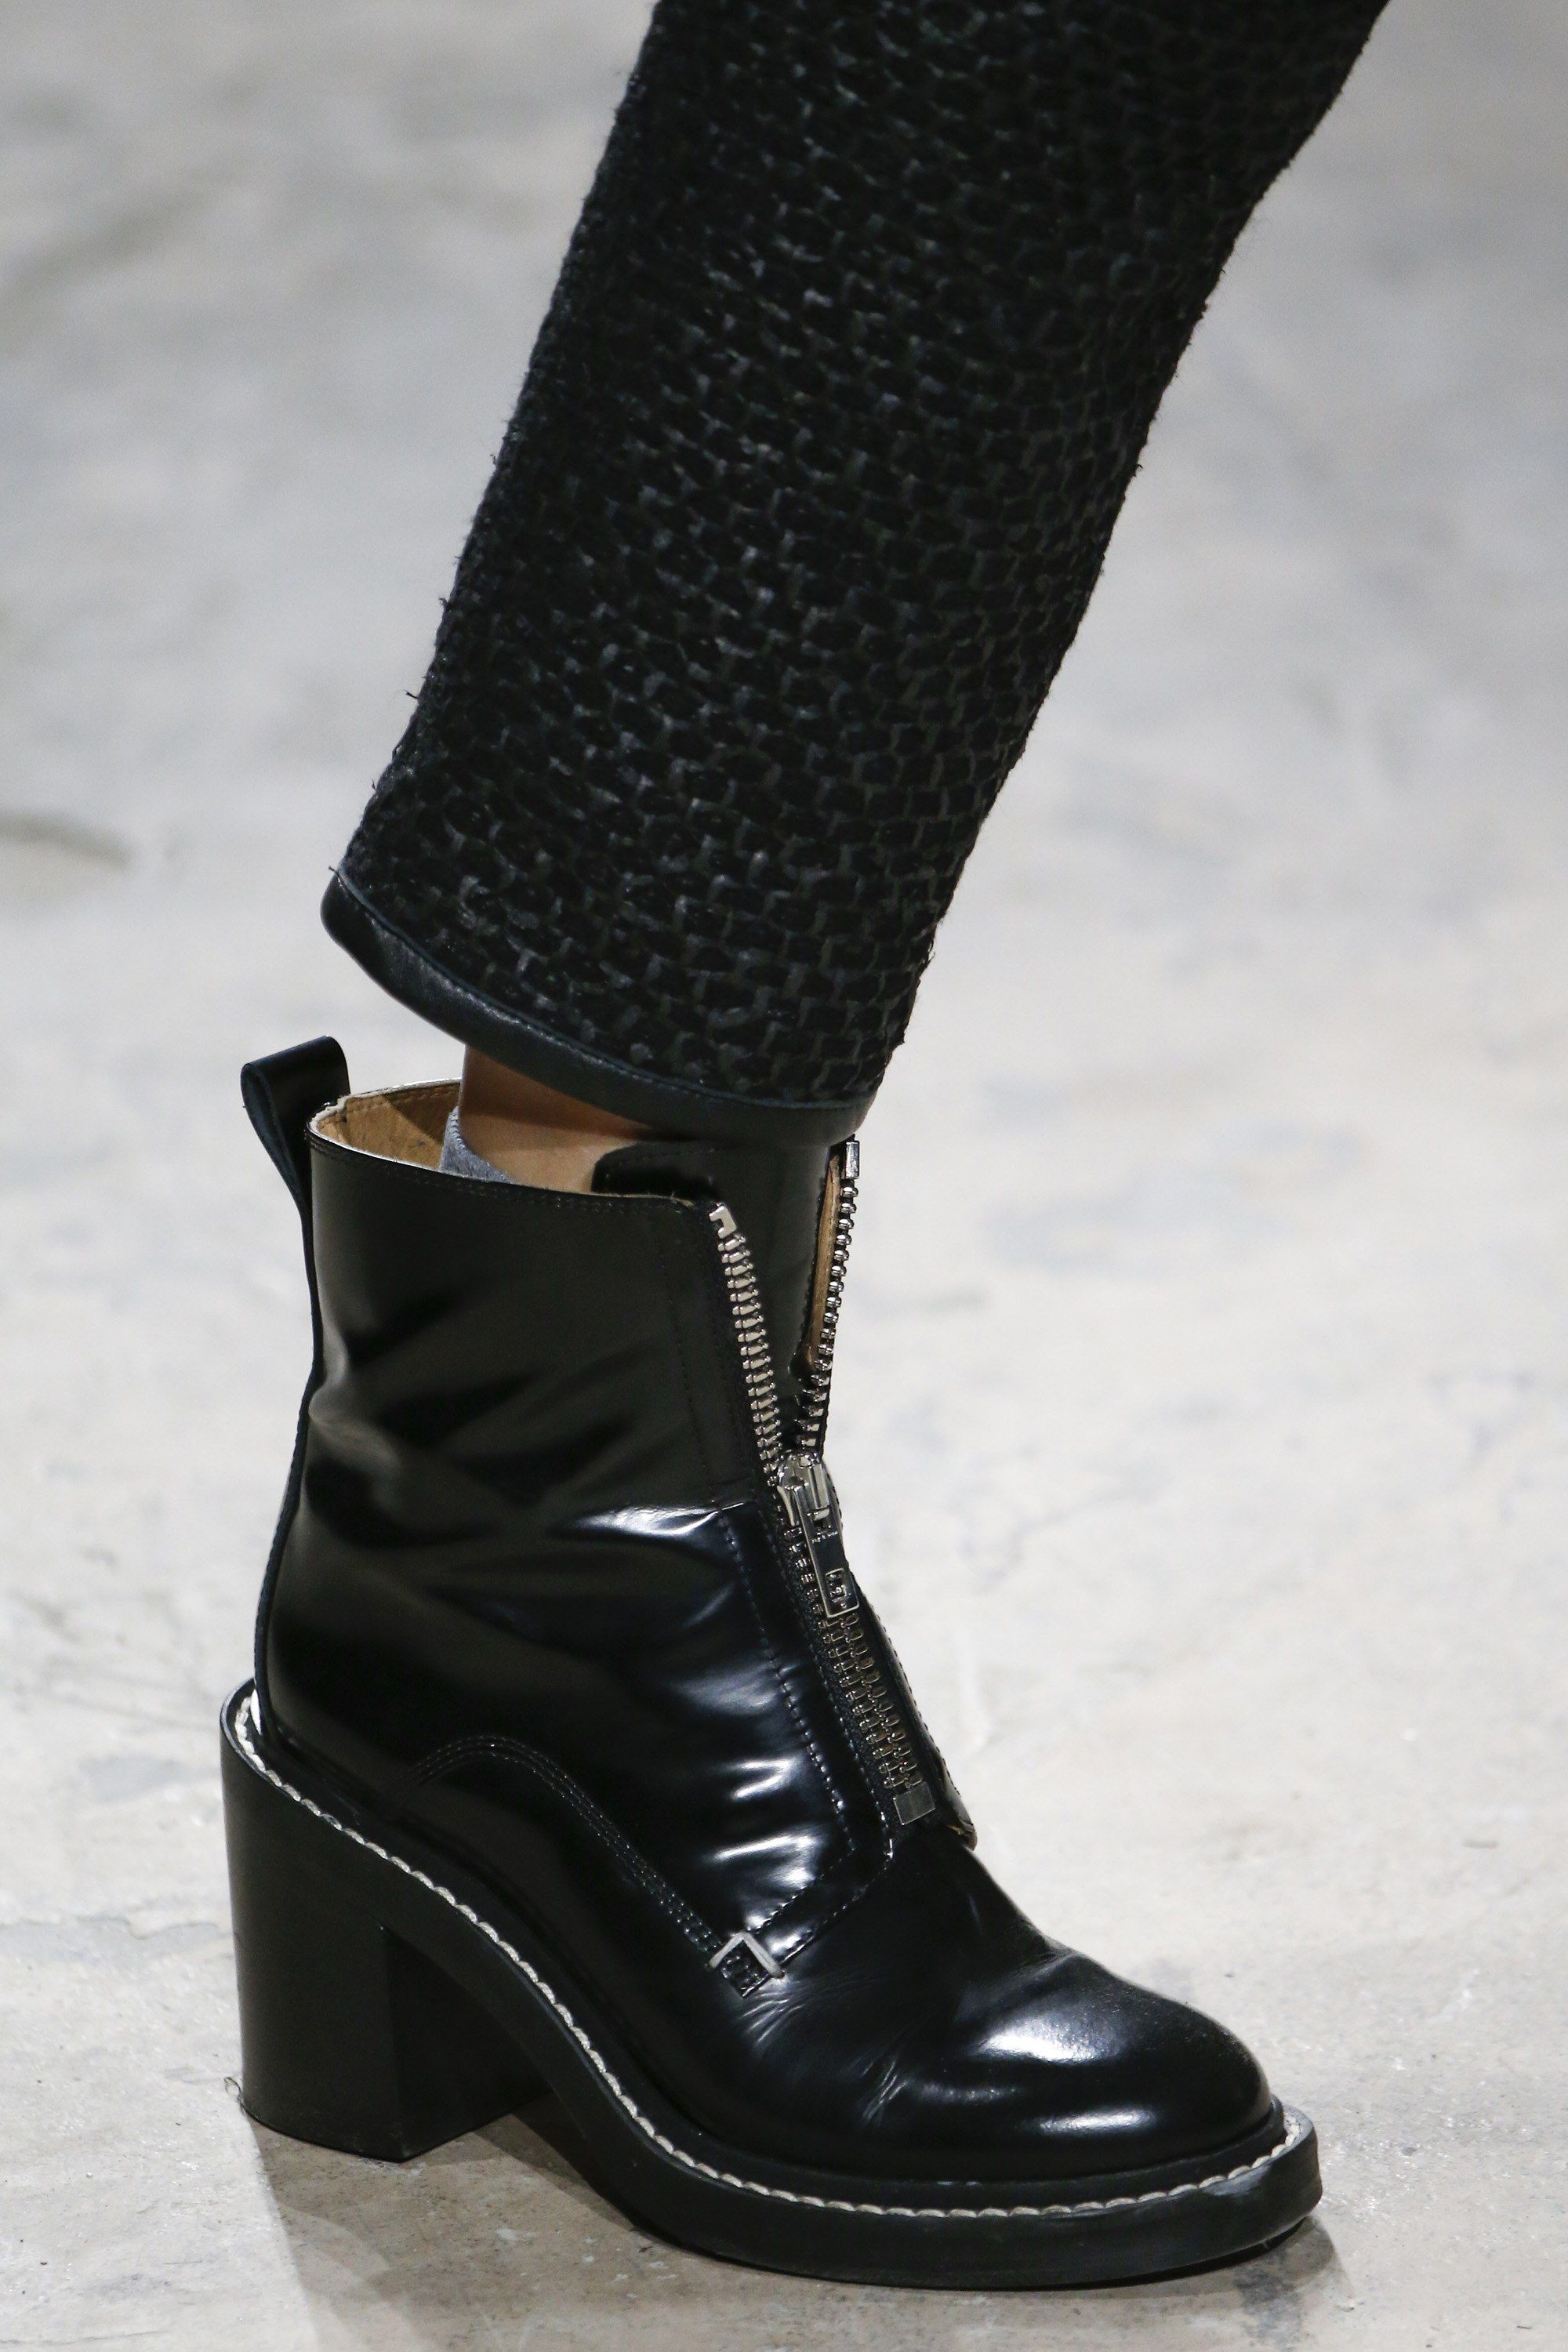 Rag & Bone Fall 2016 Ready-to-Wear Fashion Show | runway ...